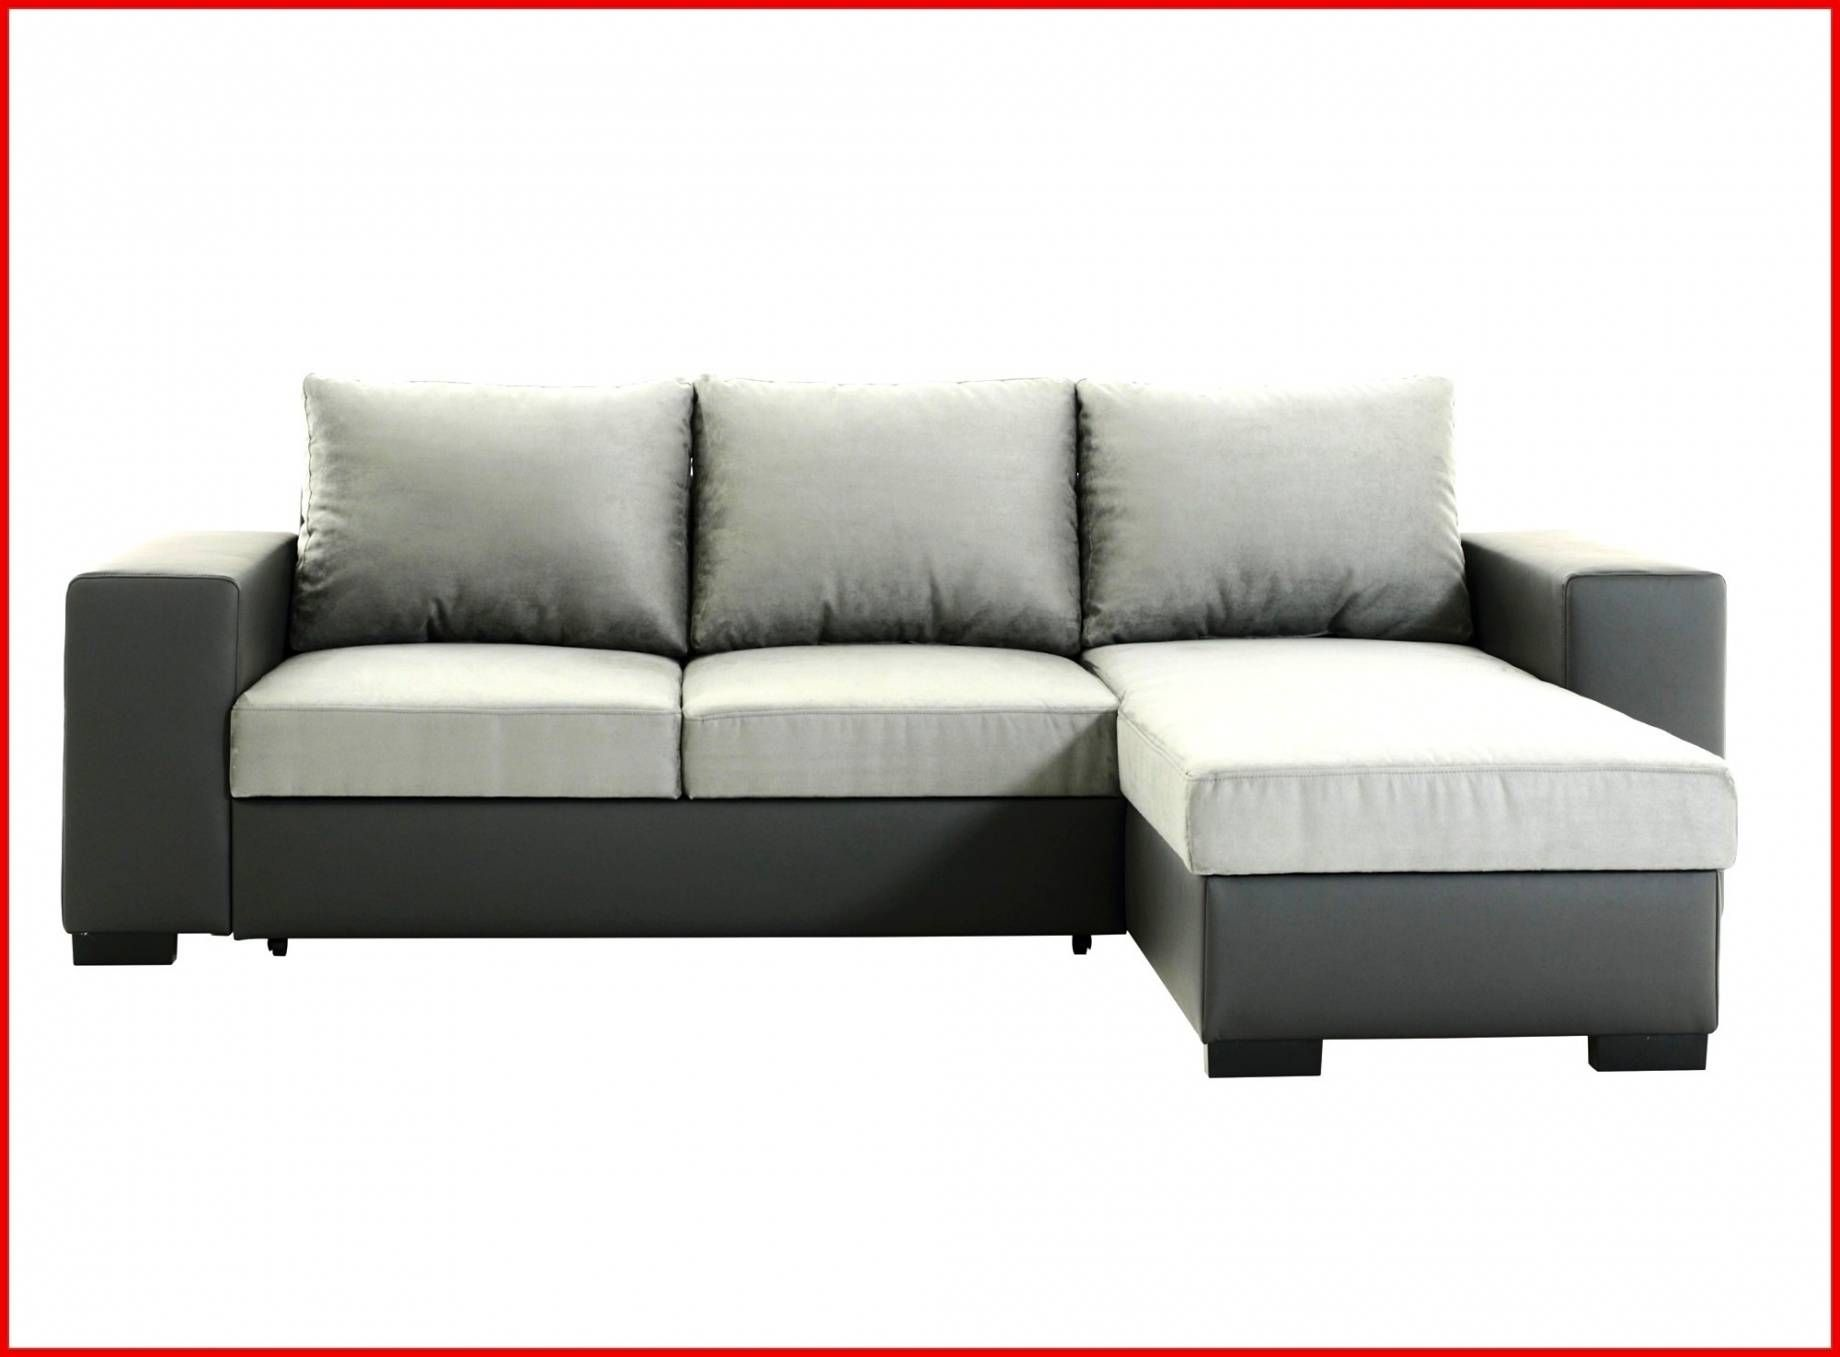 Recouvrir Un Canape Canapes Lits Soldes Doorpin Win Puredebrideur Ment Recouvrir Un Canape Canape Lit Detroit Puredebrideu In 2020 Home Decor Sectional Couch Couch